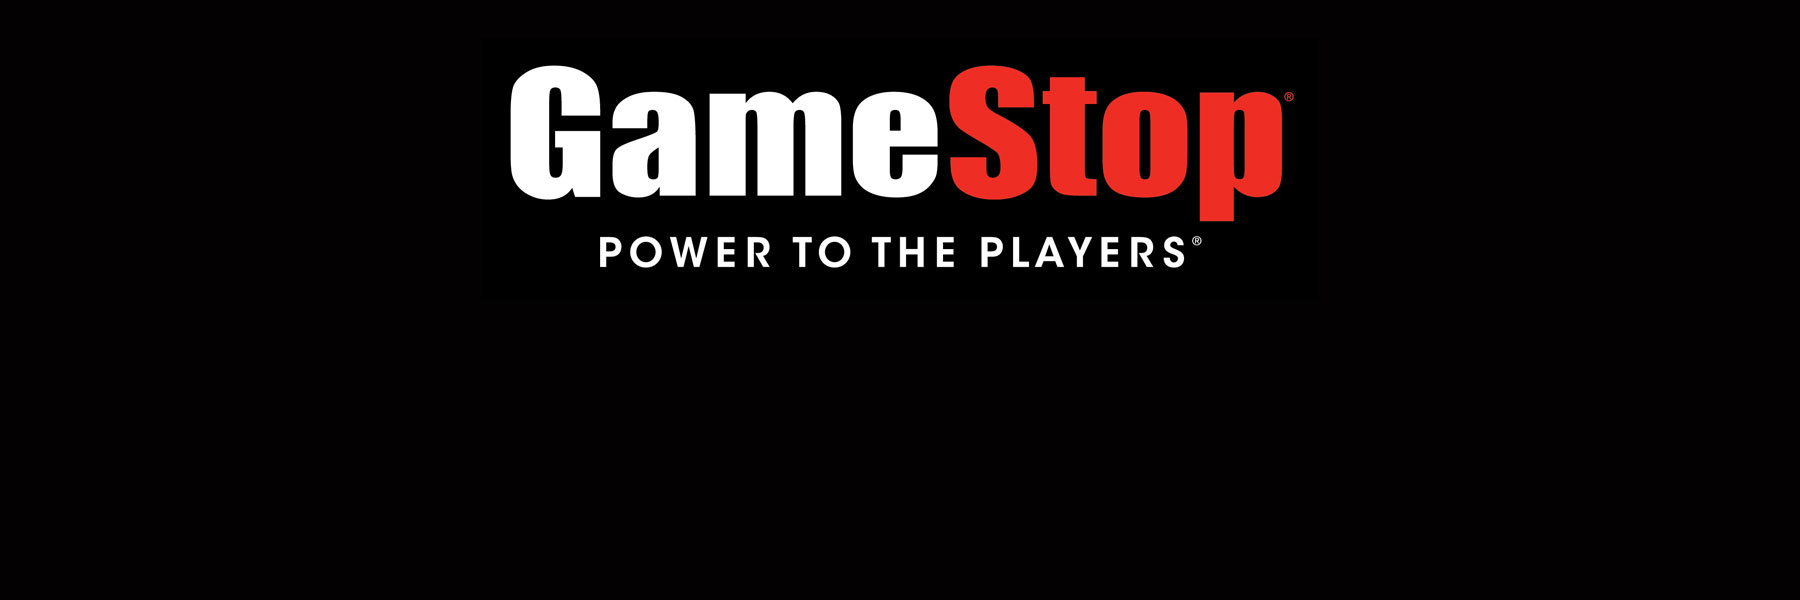 Game Stop: No Power to the Payers